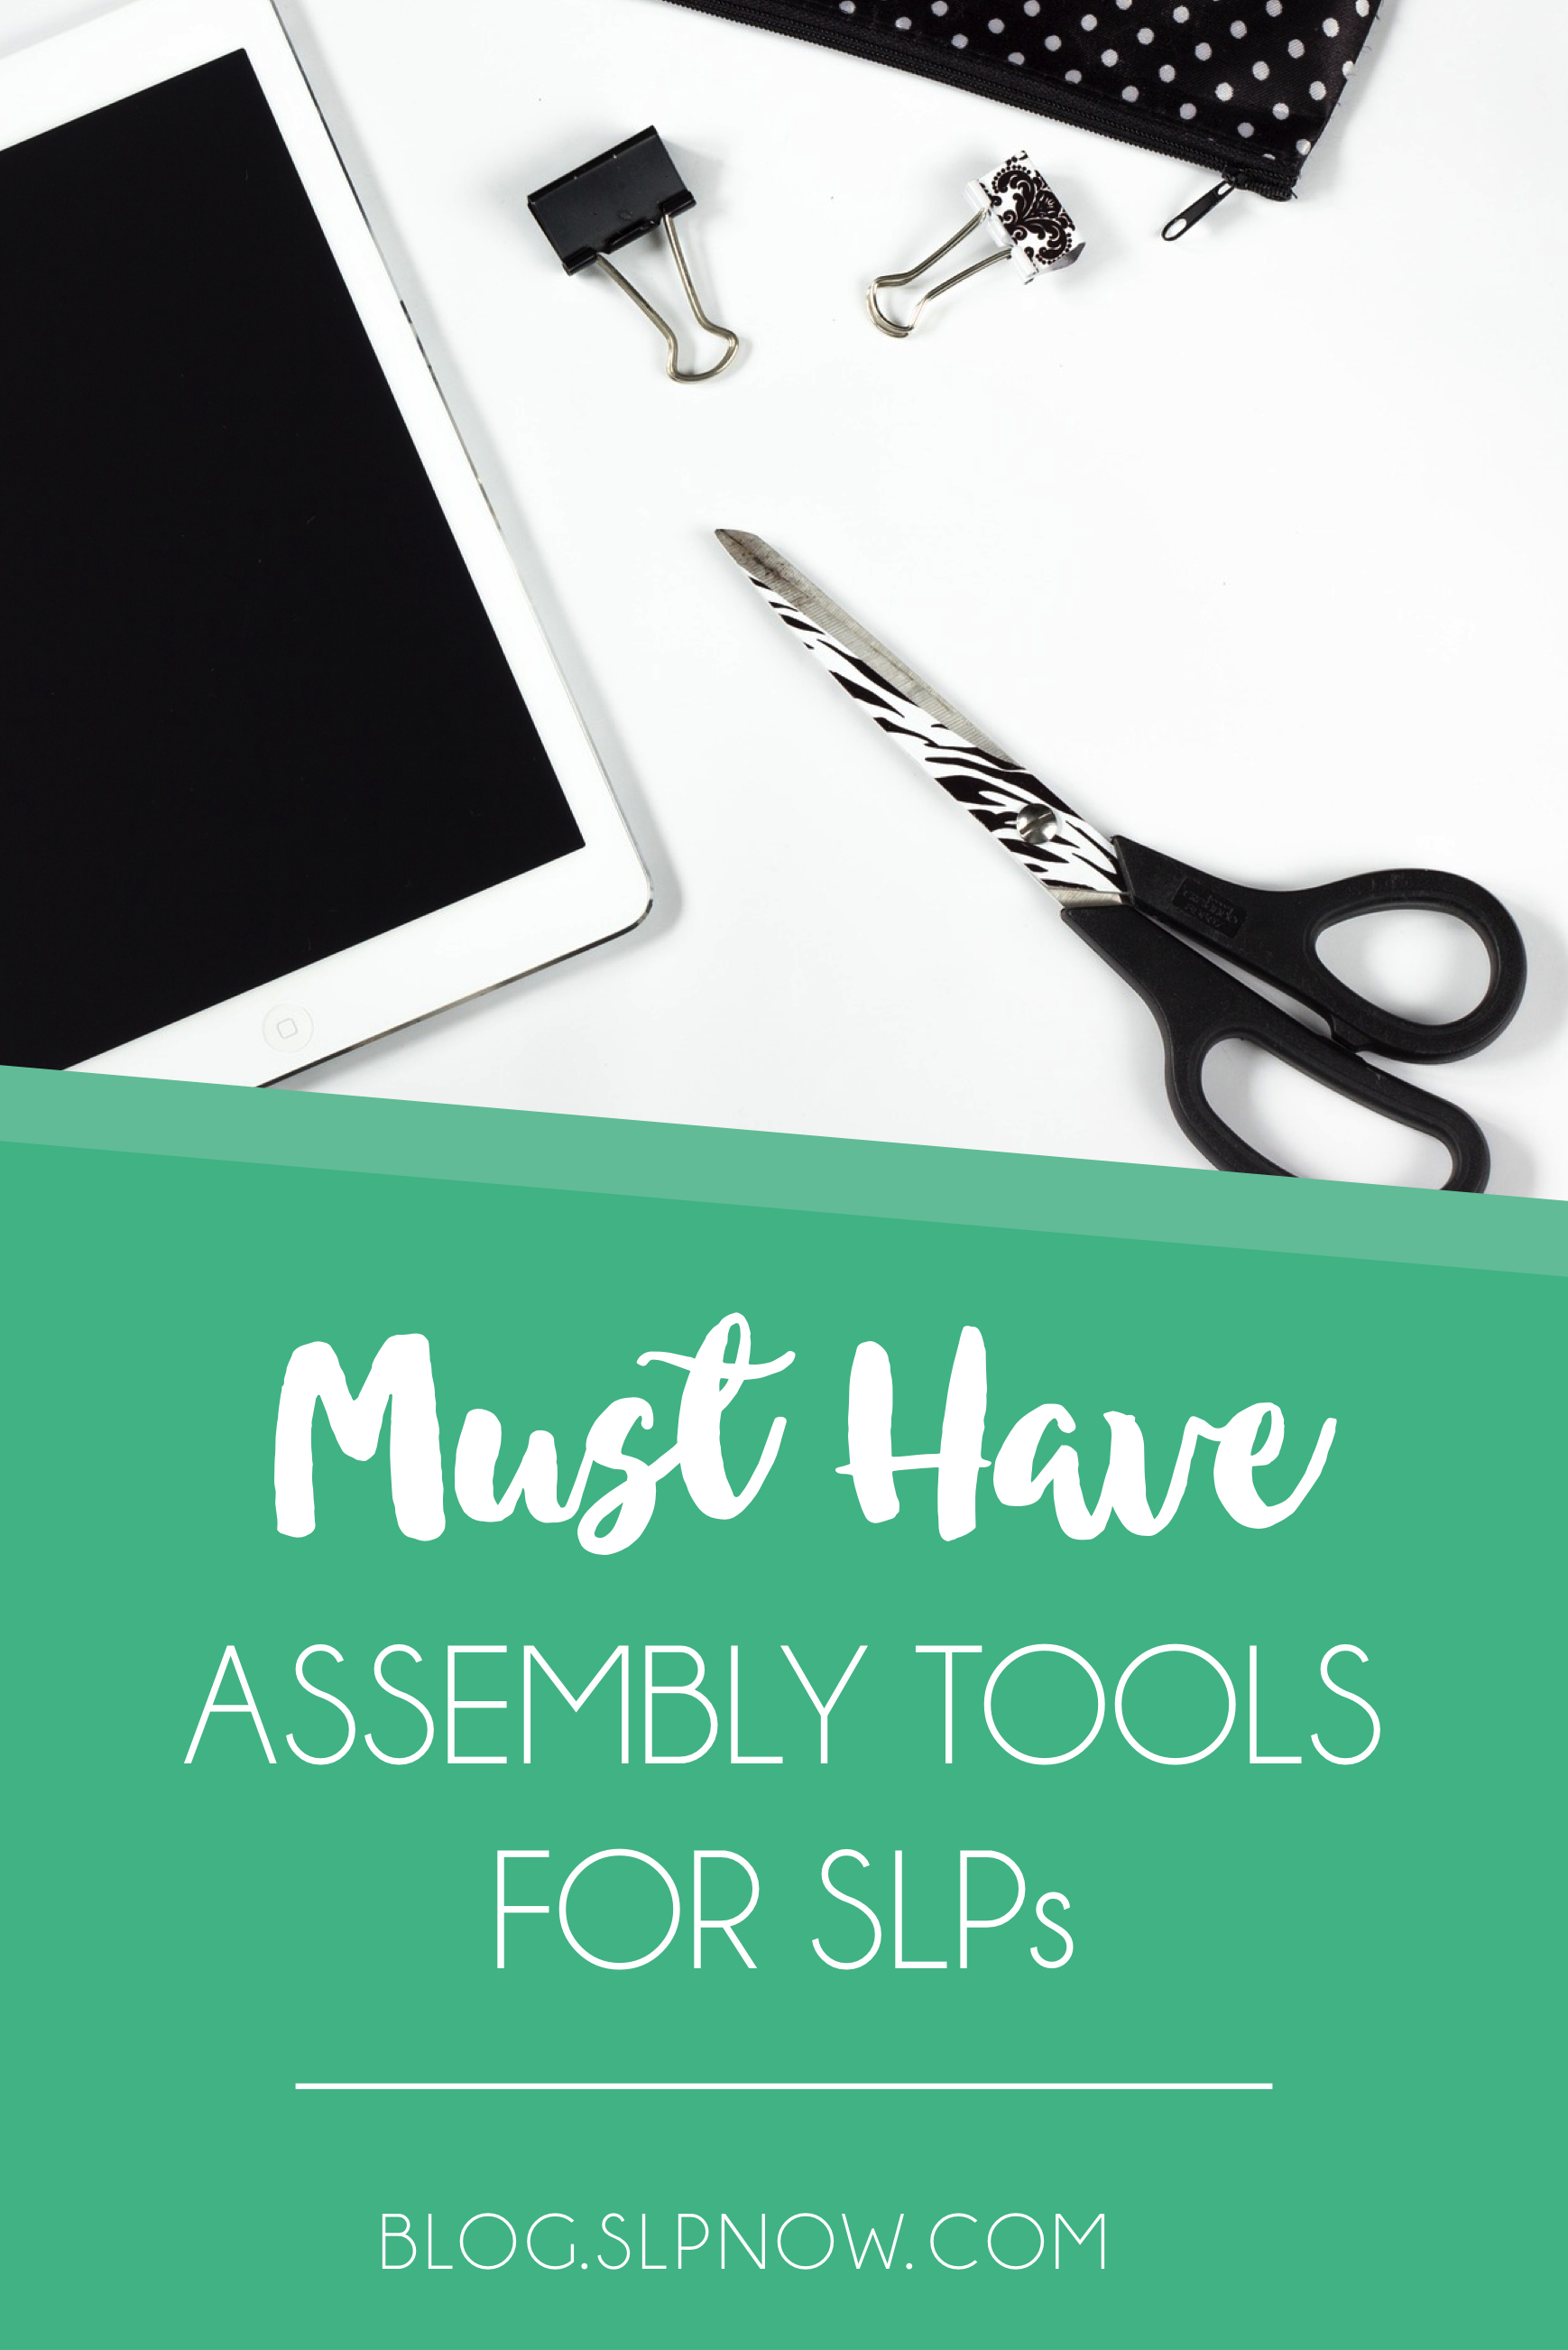 As SLPs we spend a fair amount of time prepping materials. Here is a round-up of my favorite assembly tools that help you prepare lots of different types of materials. Many of these tools can be used again and again for years, saving you money in the long run!